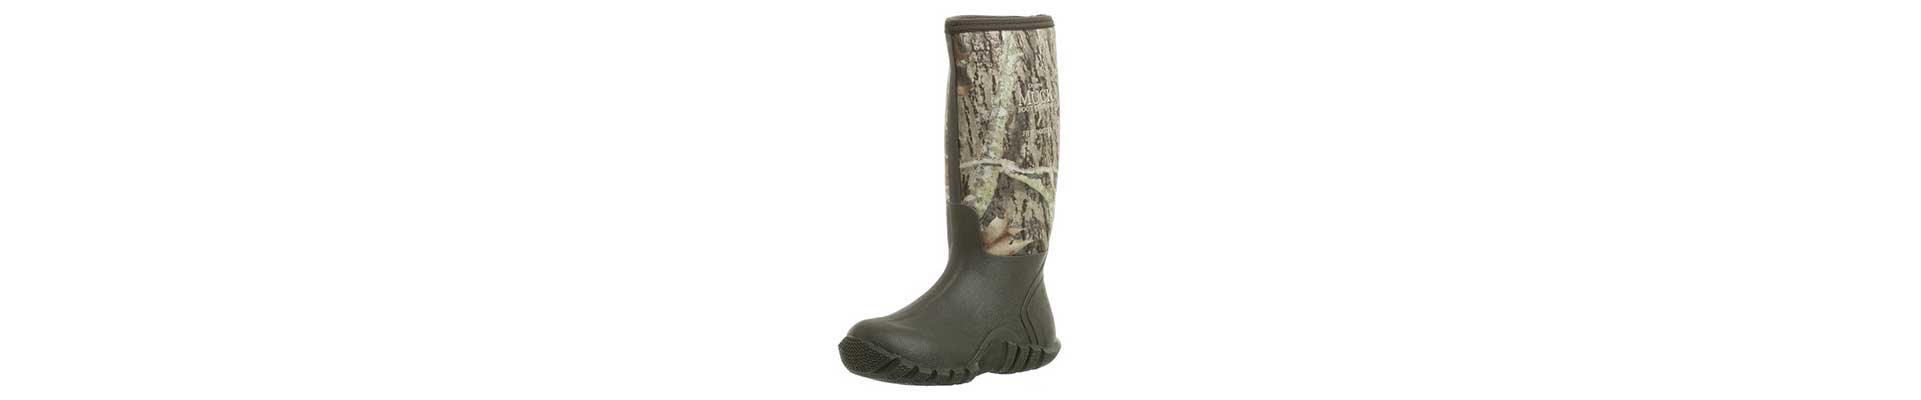 Muck boot men 39 s fieldblazer rubber hunting boots review for Bogs classic mid le jardin